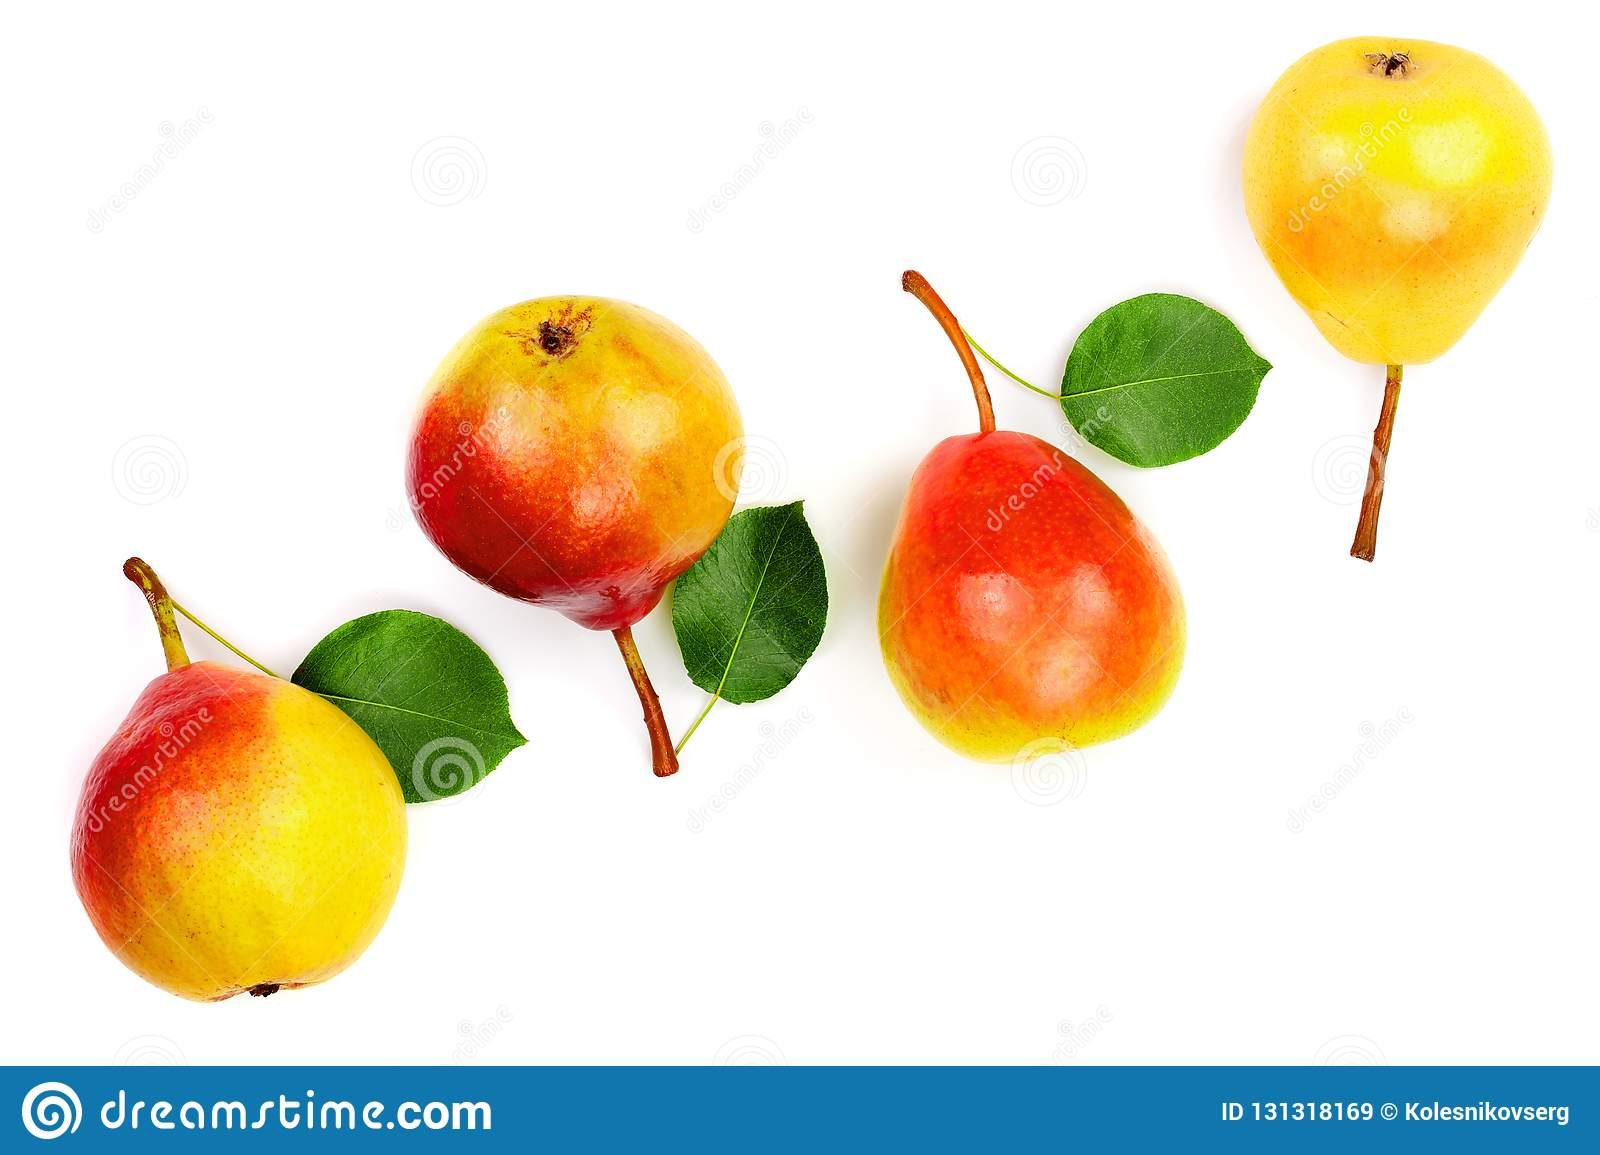 Ripe Red Yellow Pear Fruits With Leaf Isolated On White